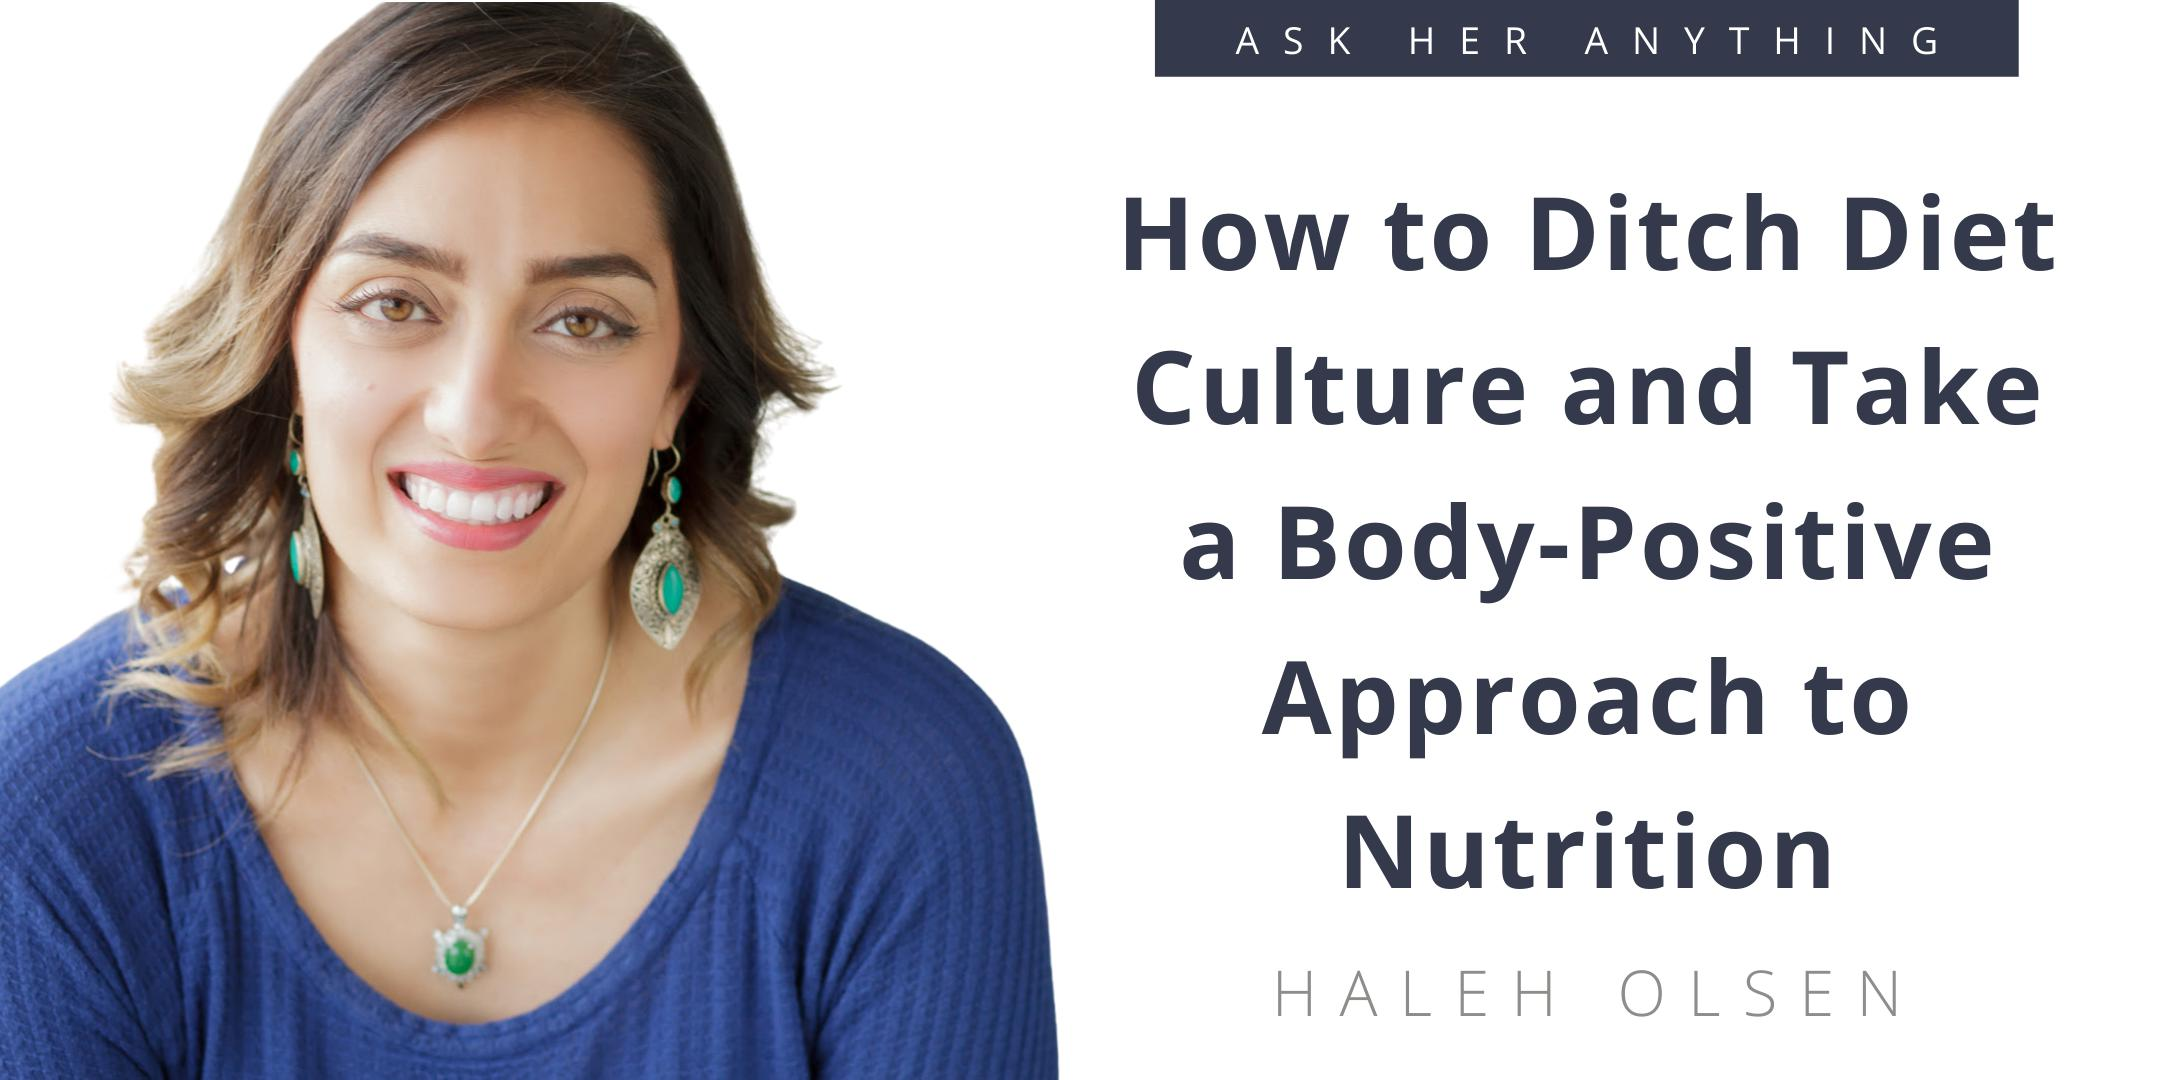 How to Ditch Diet Culture and Take a Body-Positive Approach to Nutrition